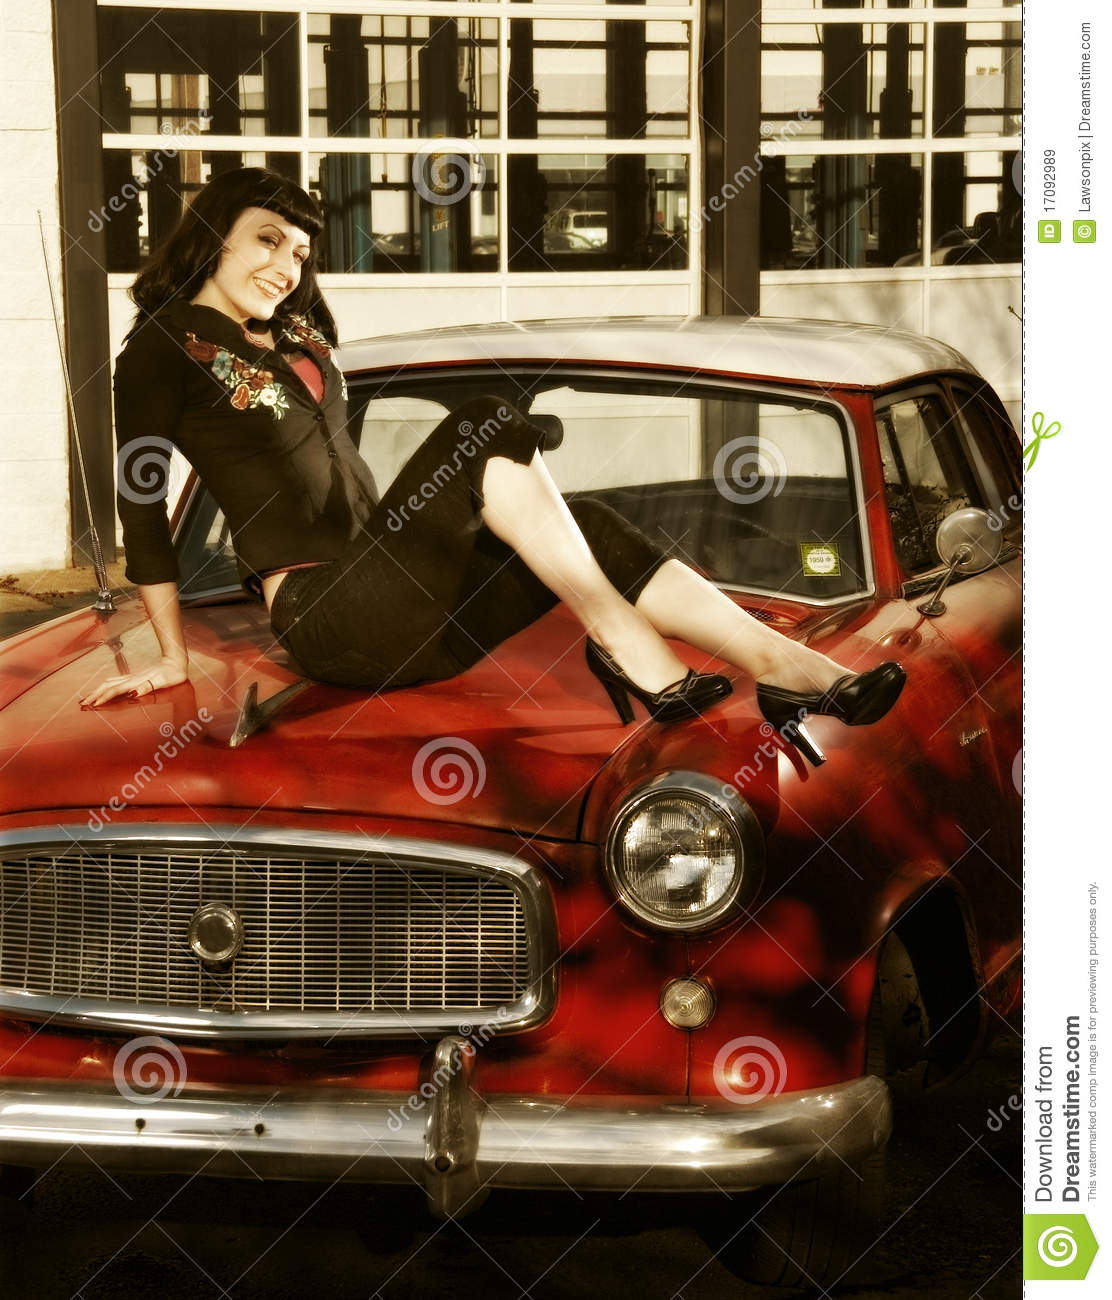 pin up style model sitting on an antique car royalty free stock images image 17092989. Black Bedroom Furniture Sets. Home Design Ideas